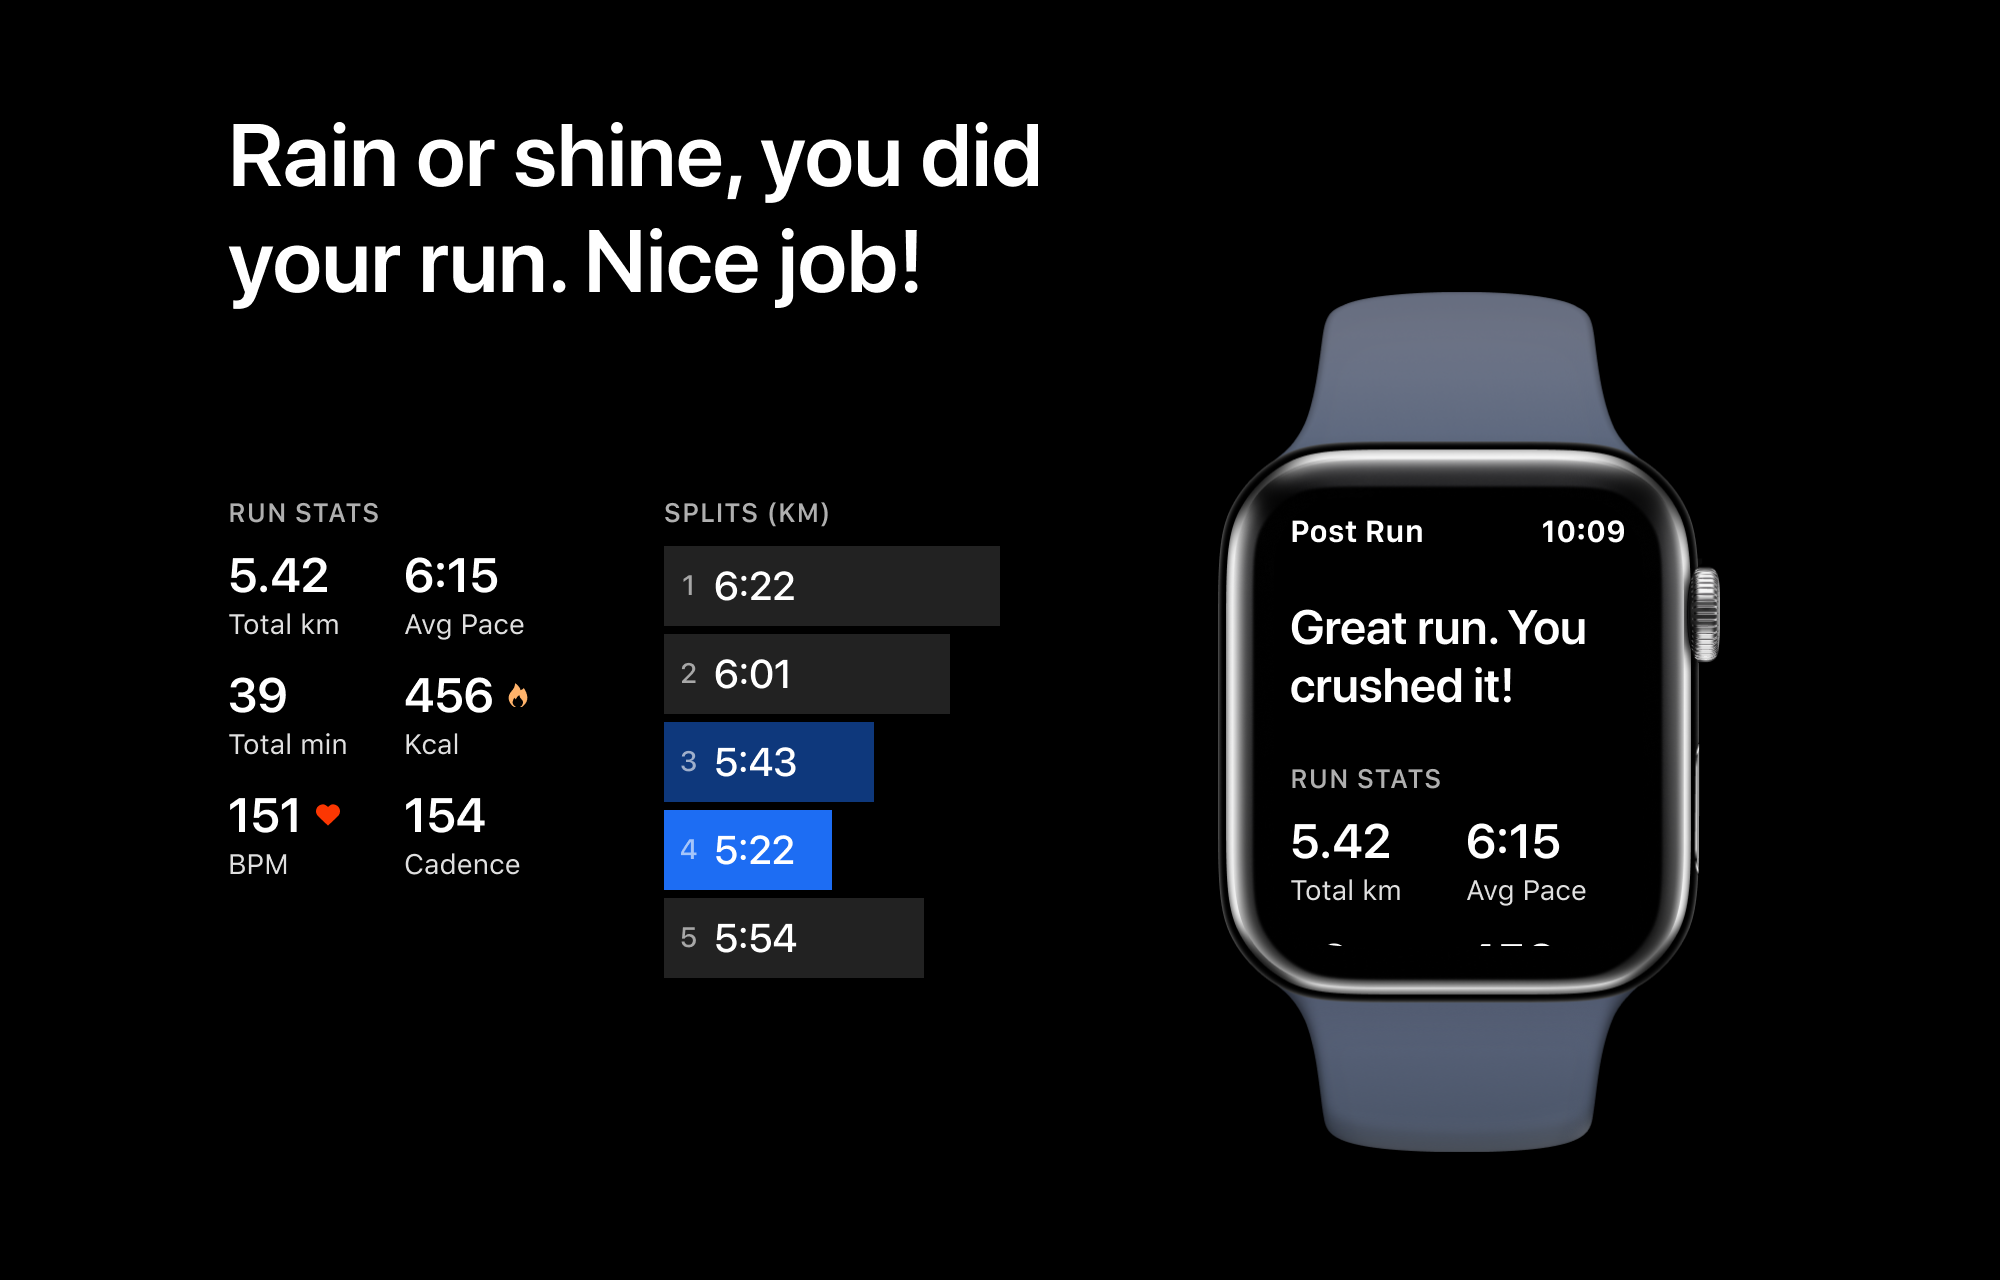 Design layout with an apple watch on the right and split times design on the left